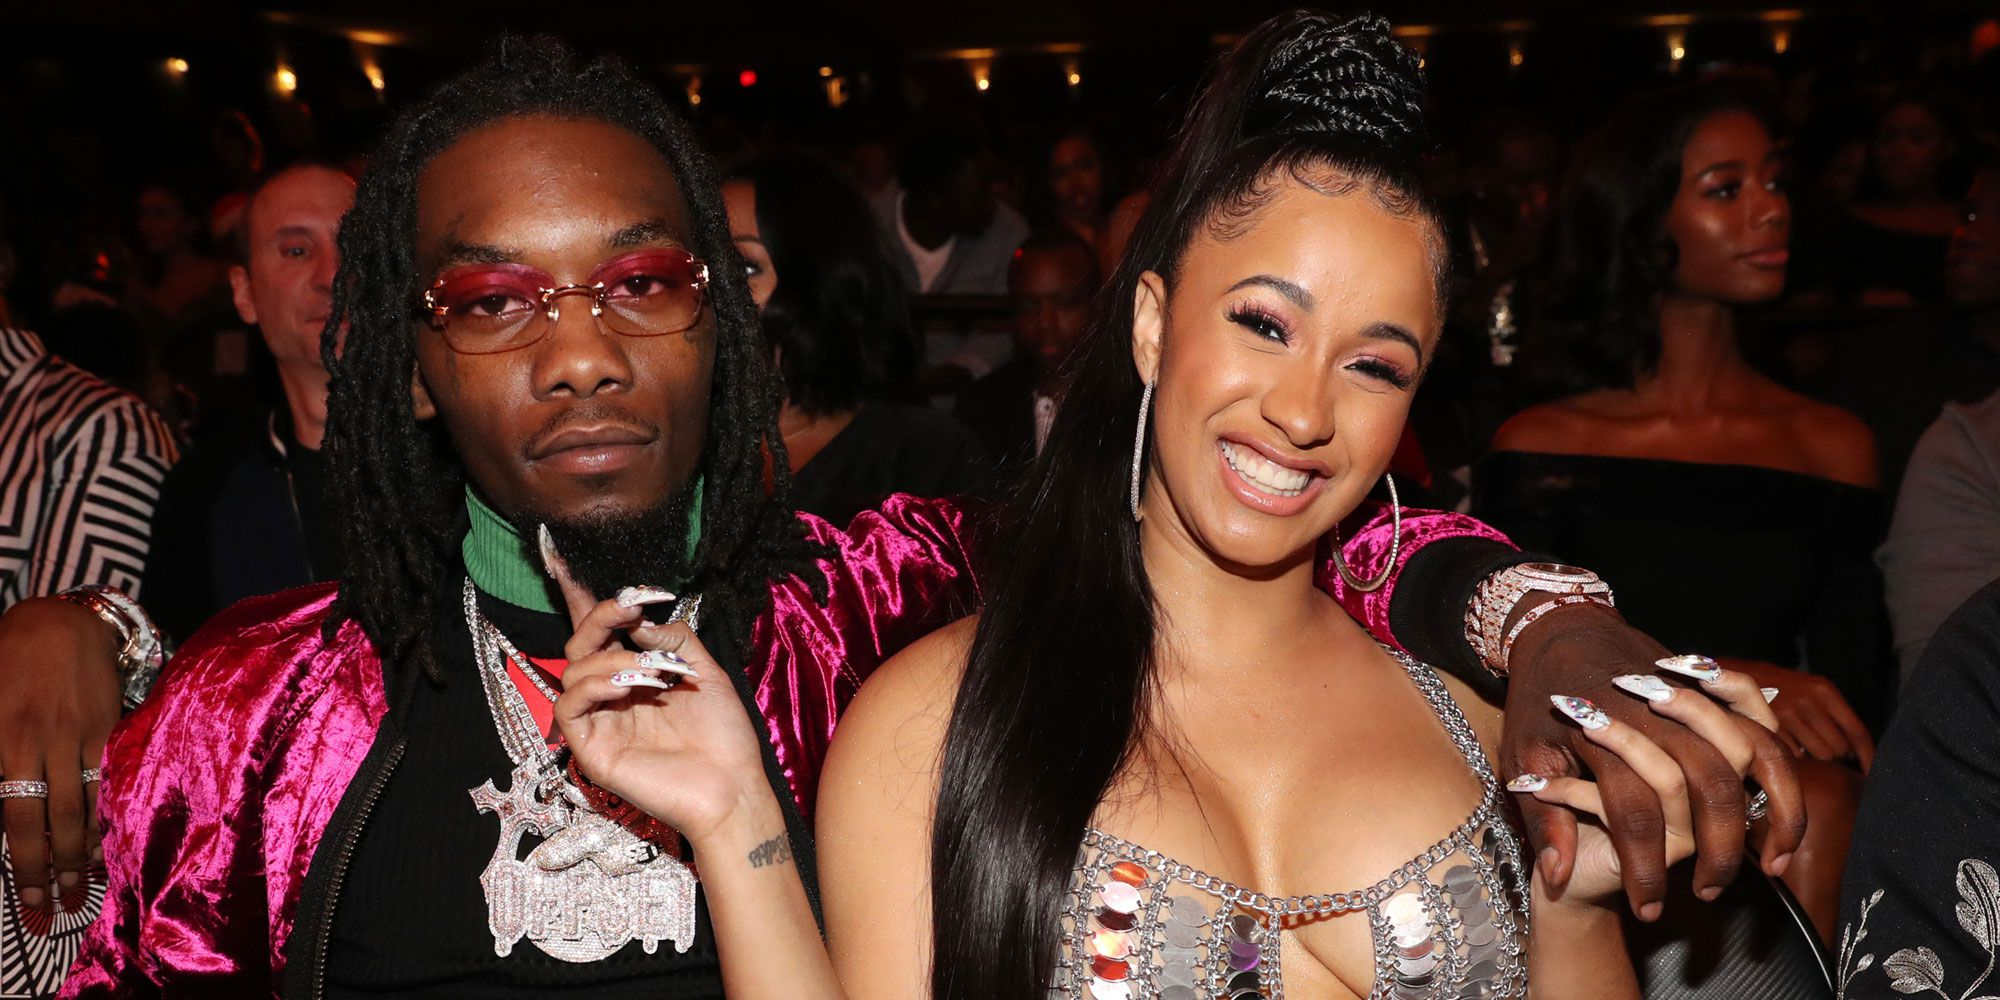 A Definitive Timeline of Cardi B and Offset's Relationship